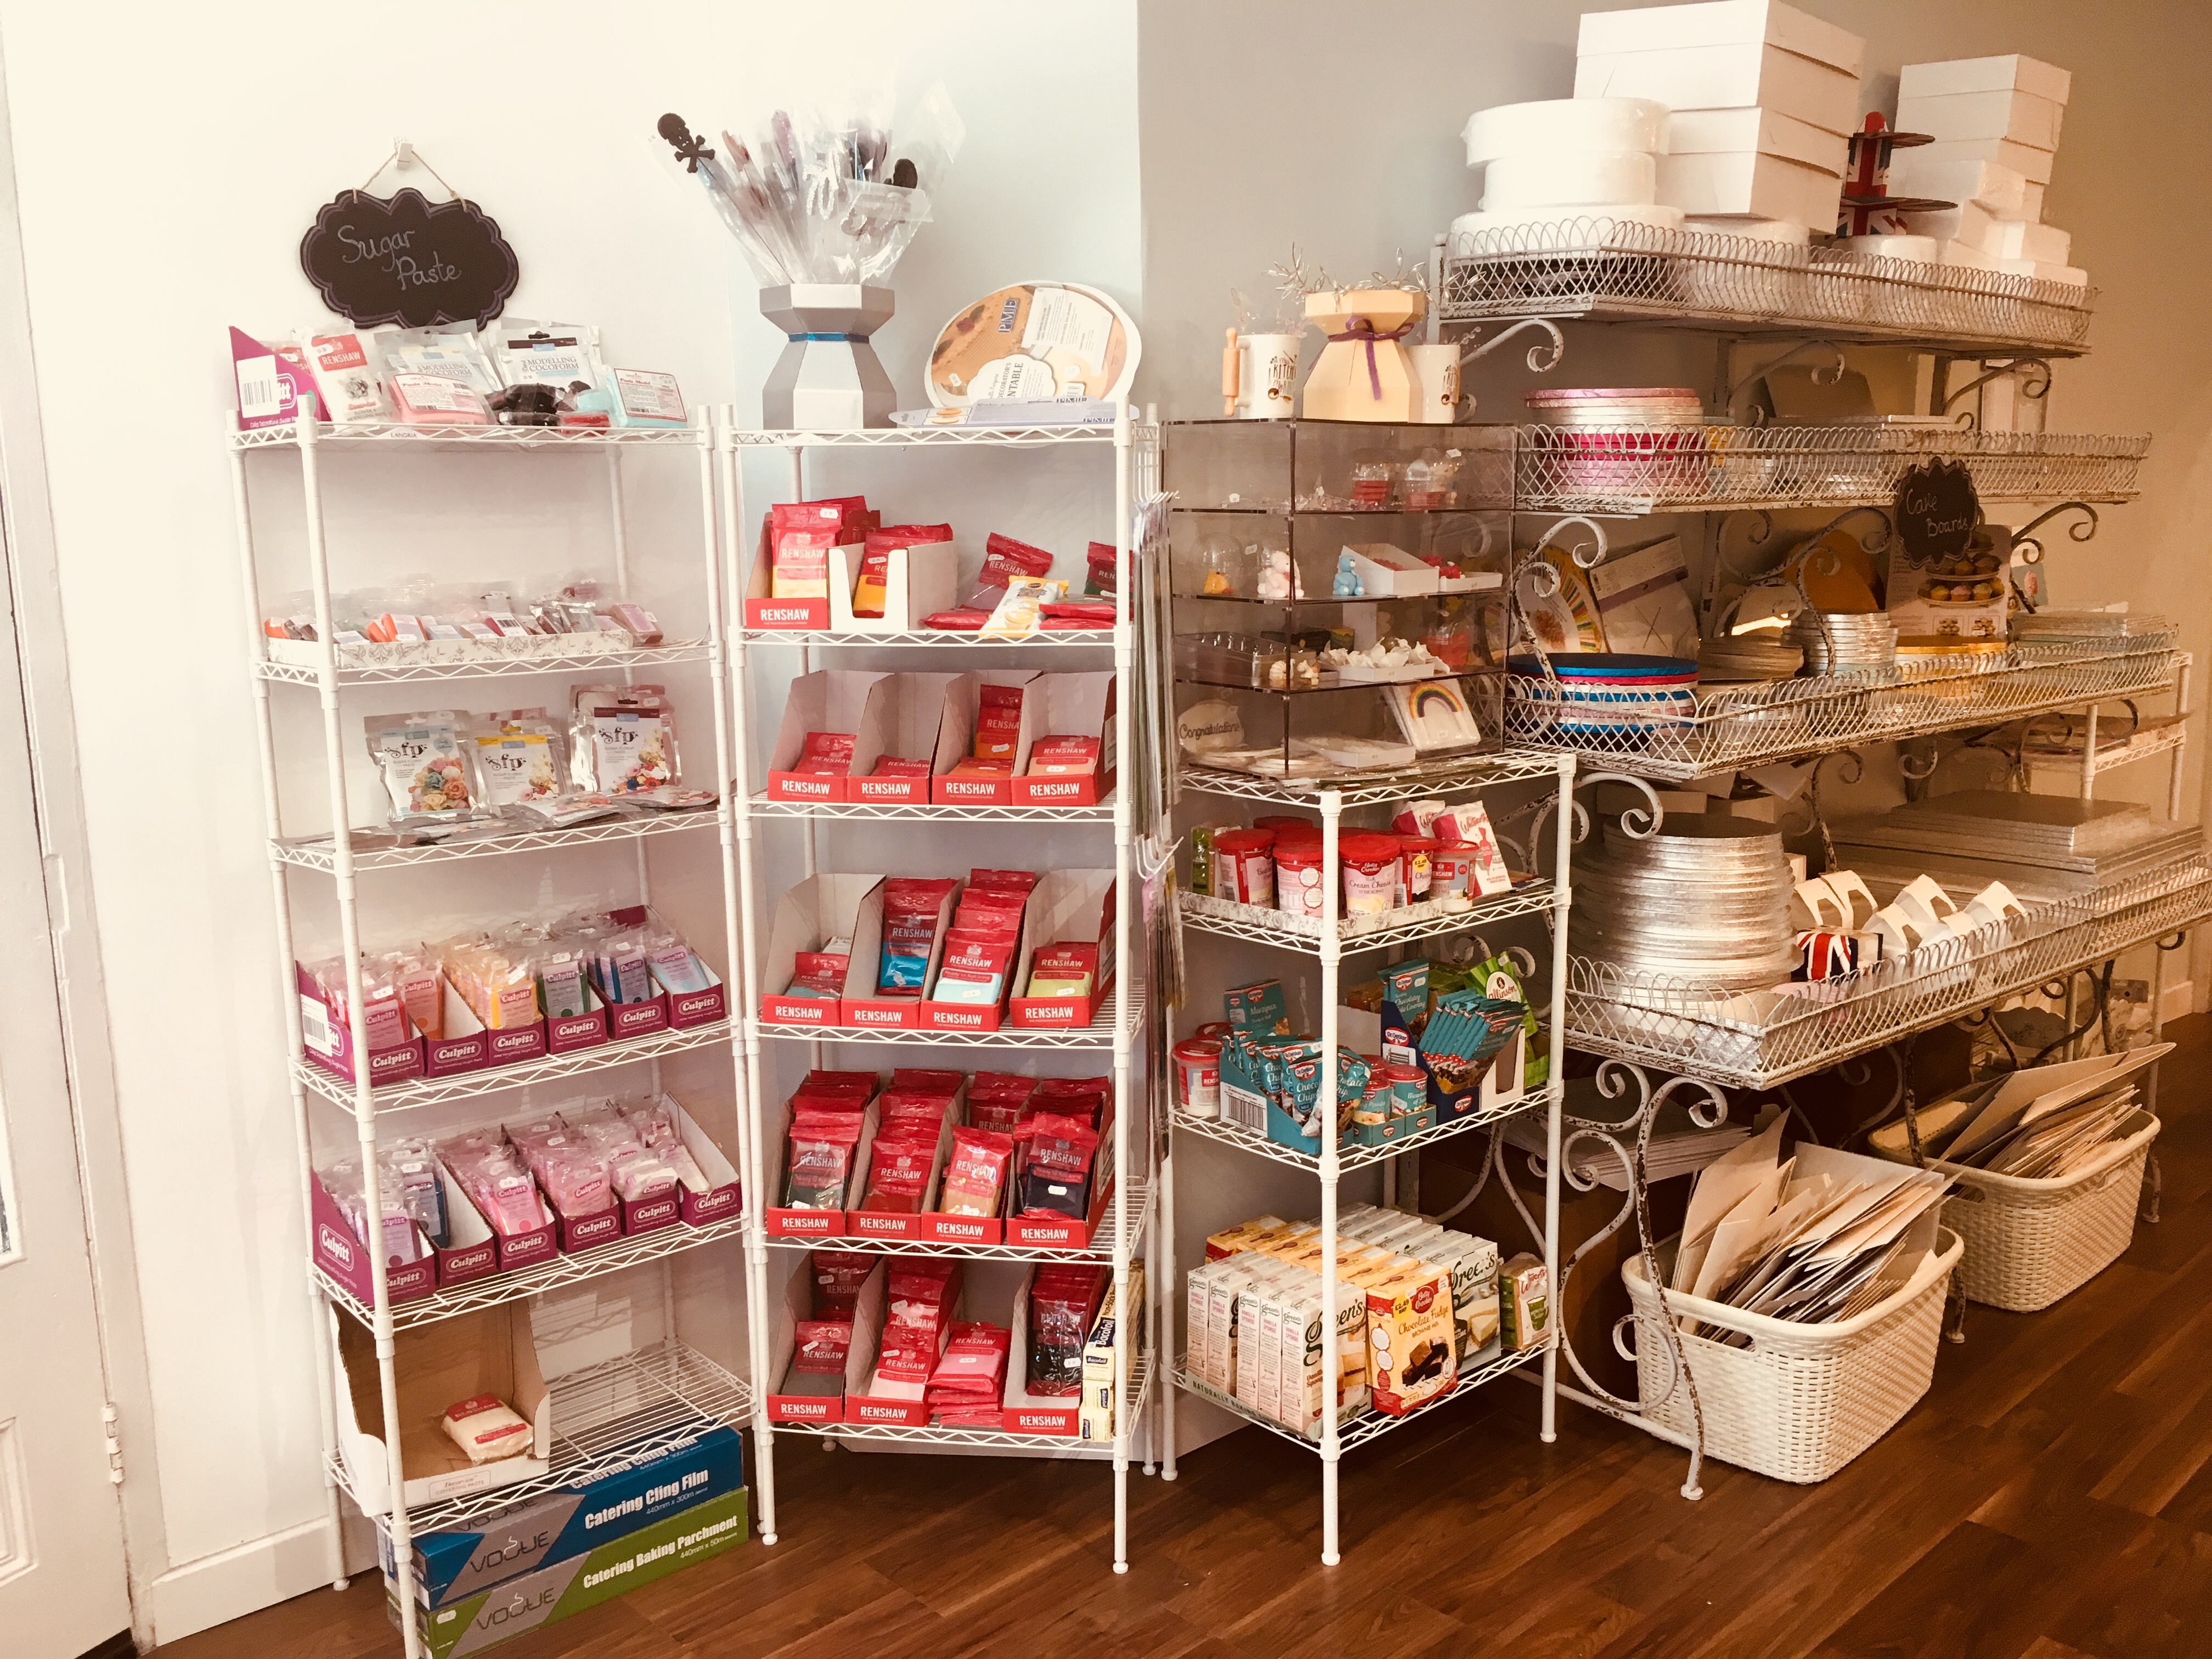 Cake decorating supplies - Rochester Cakes Ltd Cake ...